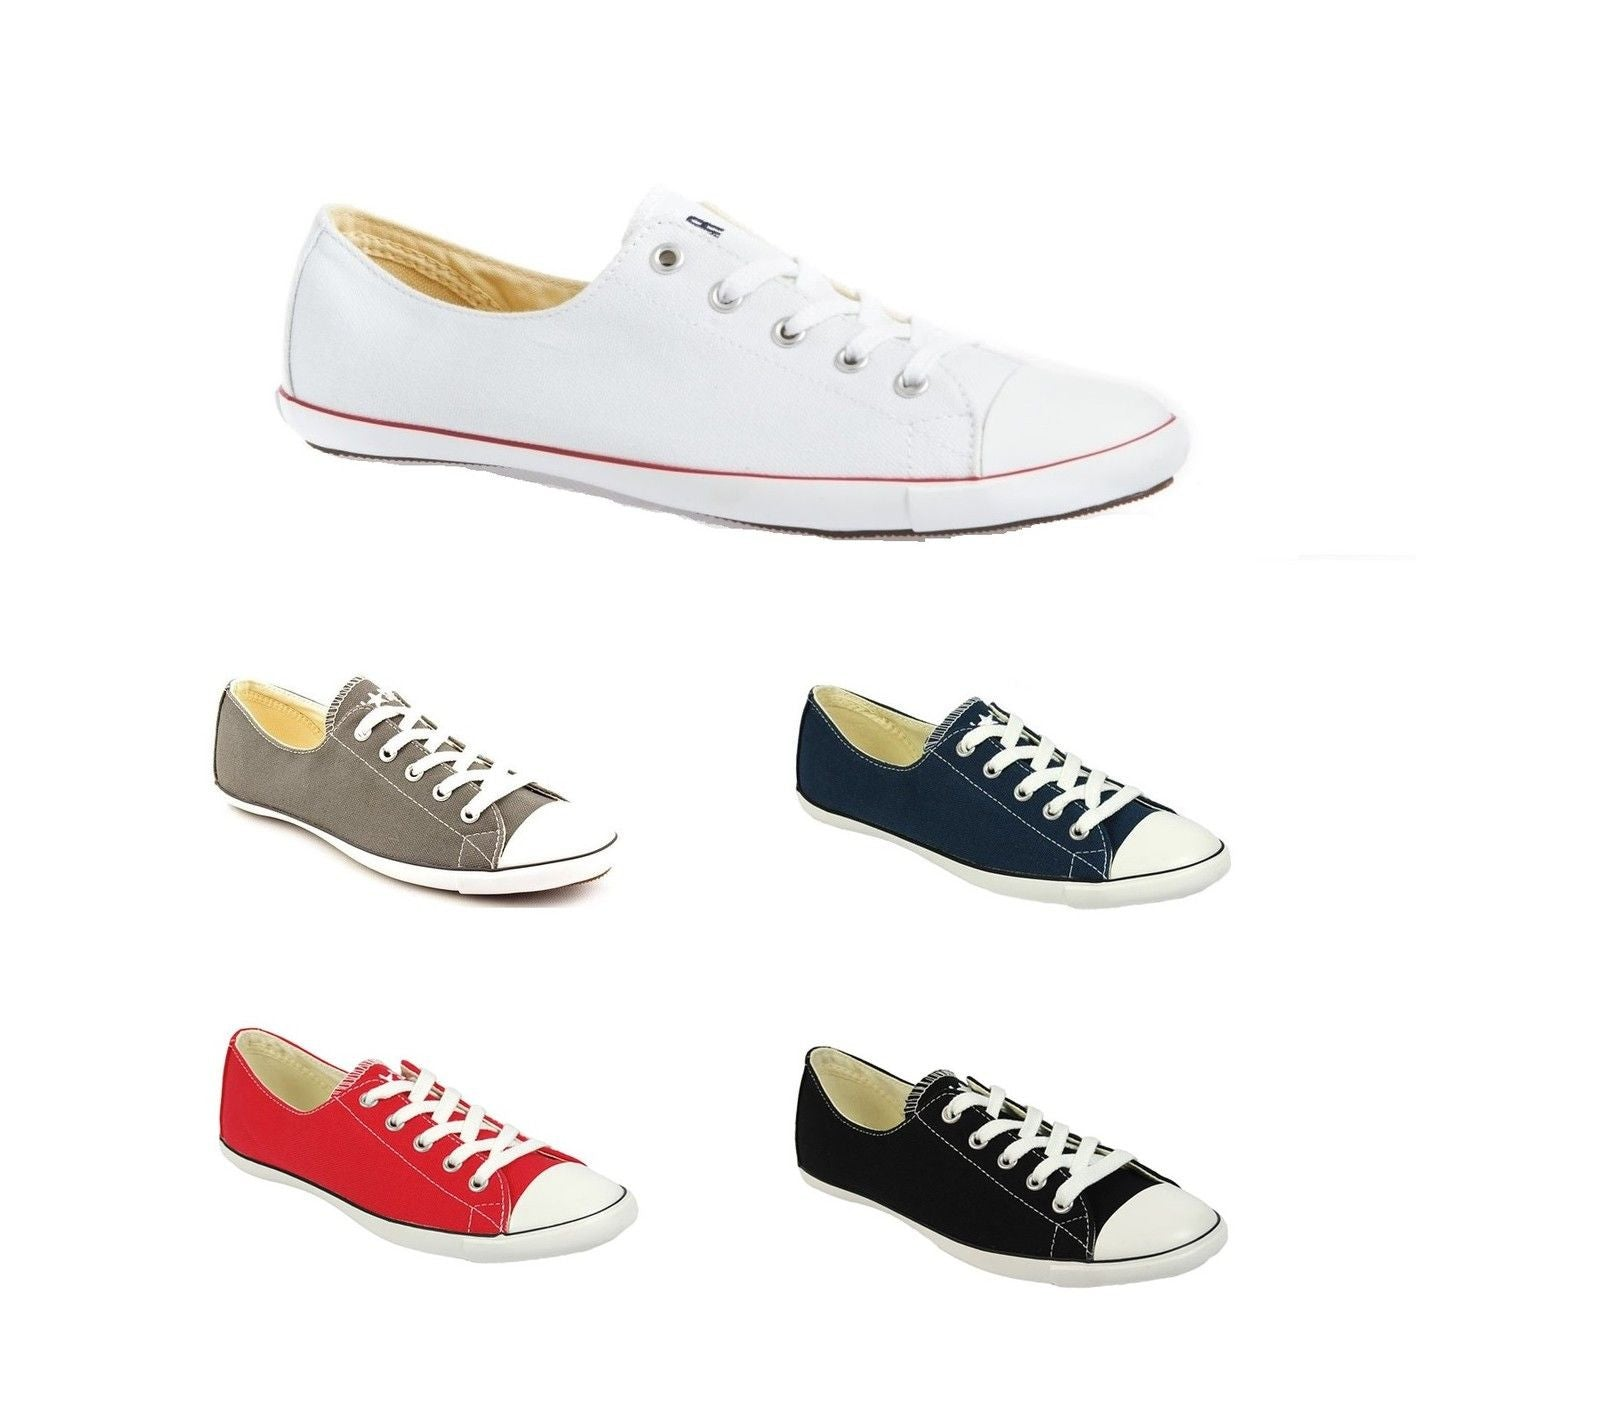 bdf863b39b64e2 Converse Chuck Taylor Trainer Light OX All Star NEW AUTHENTIC All colors  sizes   ...